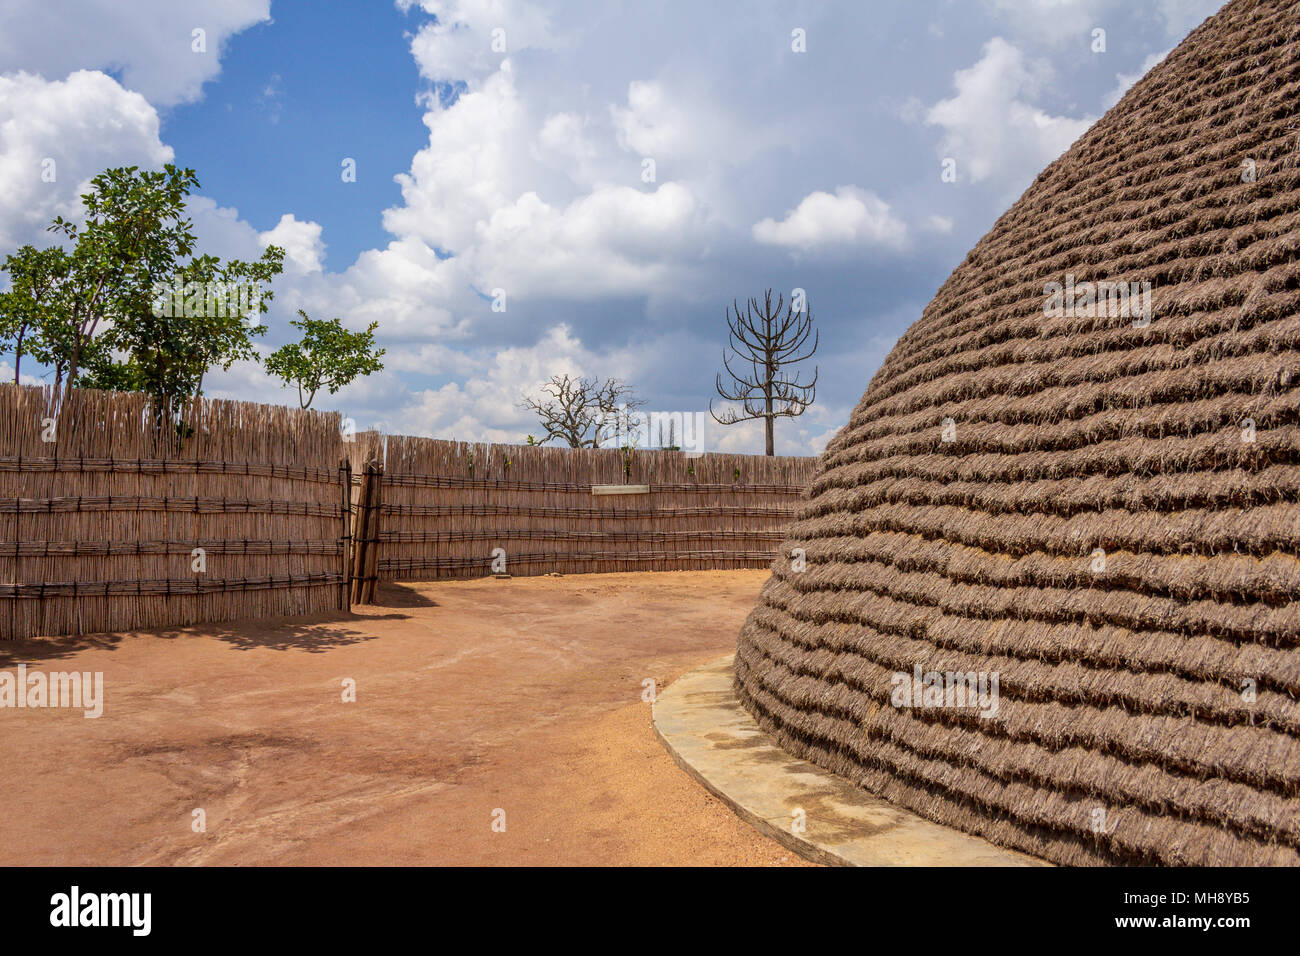 A reconstruction of the King's Palace in Nyanza, Rwanda, Africa - Stock Image